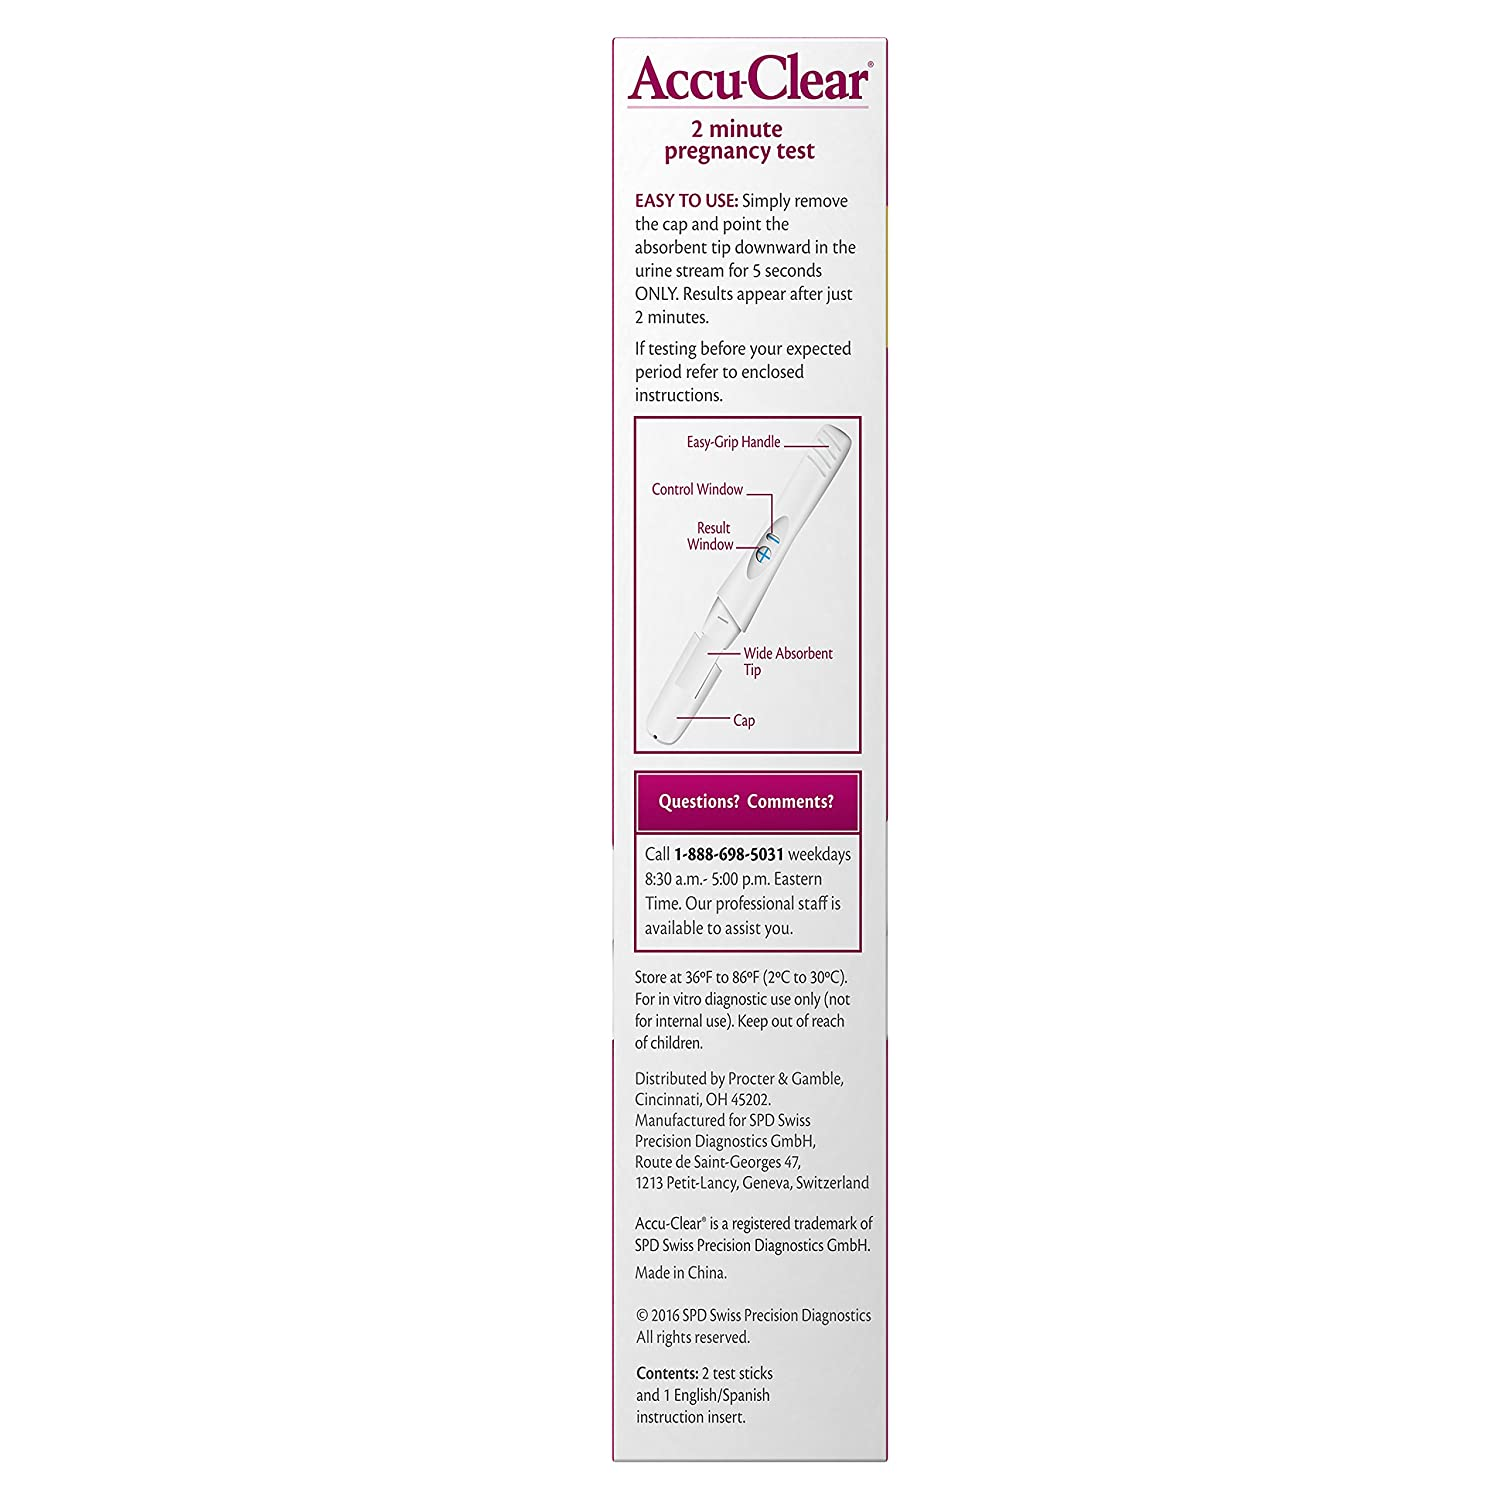 Amazon.com: Accuclear Pregnancy Test, 2-Count (Pack of 2): Health & Personal Care